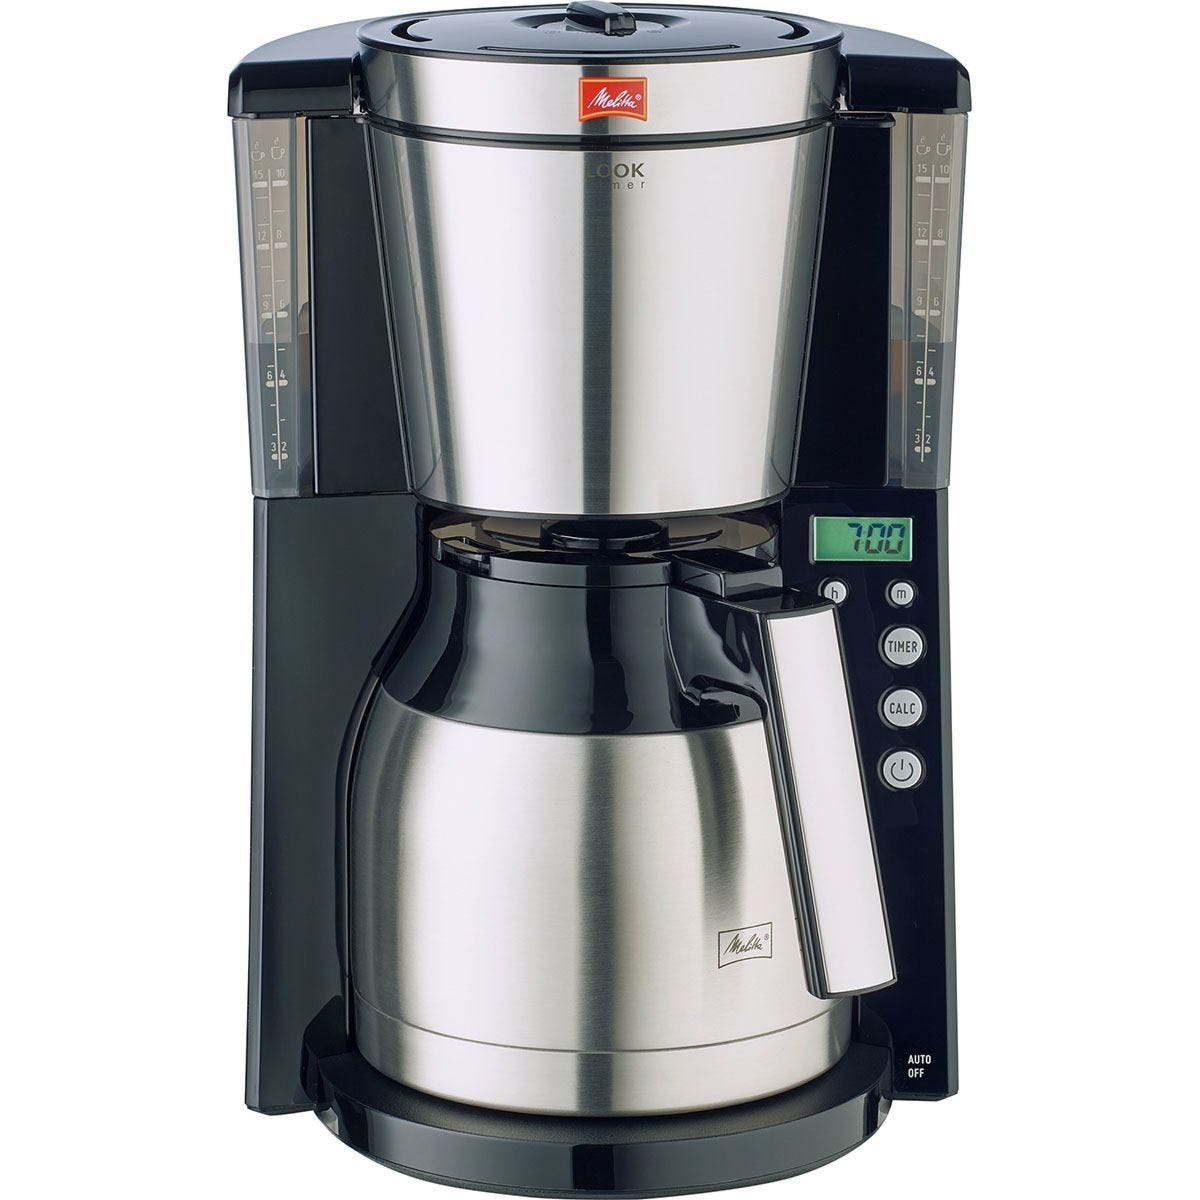 Melitta Look IV Therm Timer Coffee Maker - Black